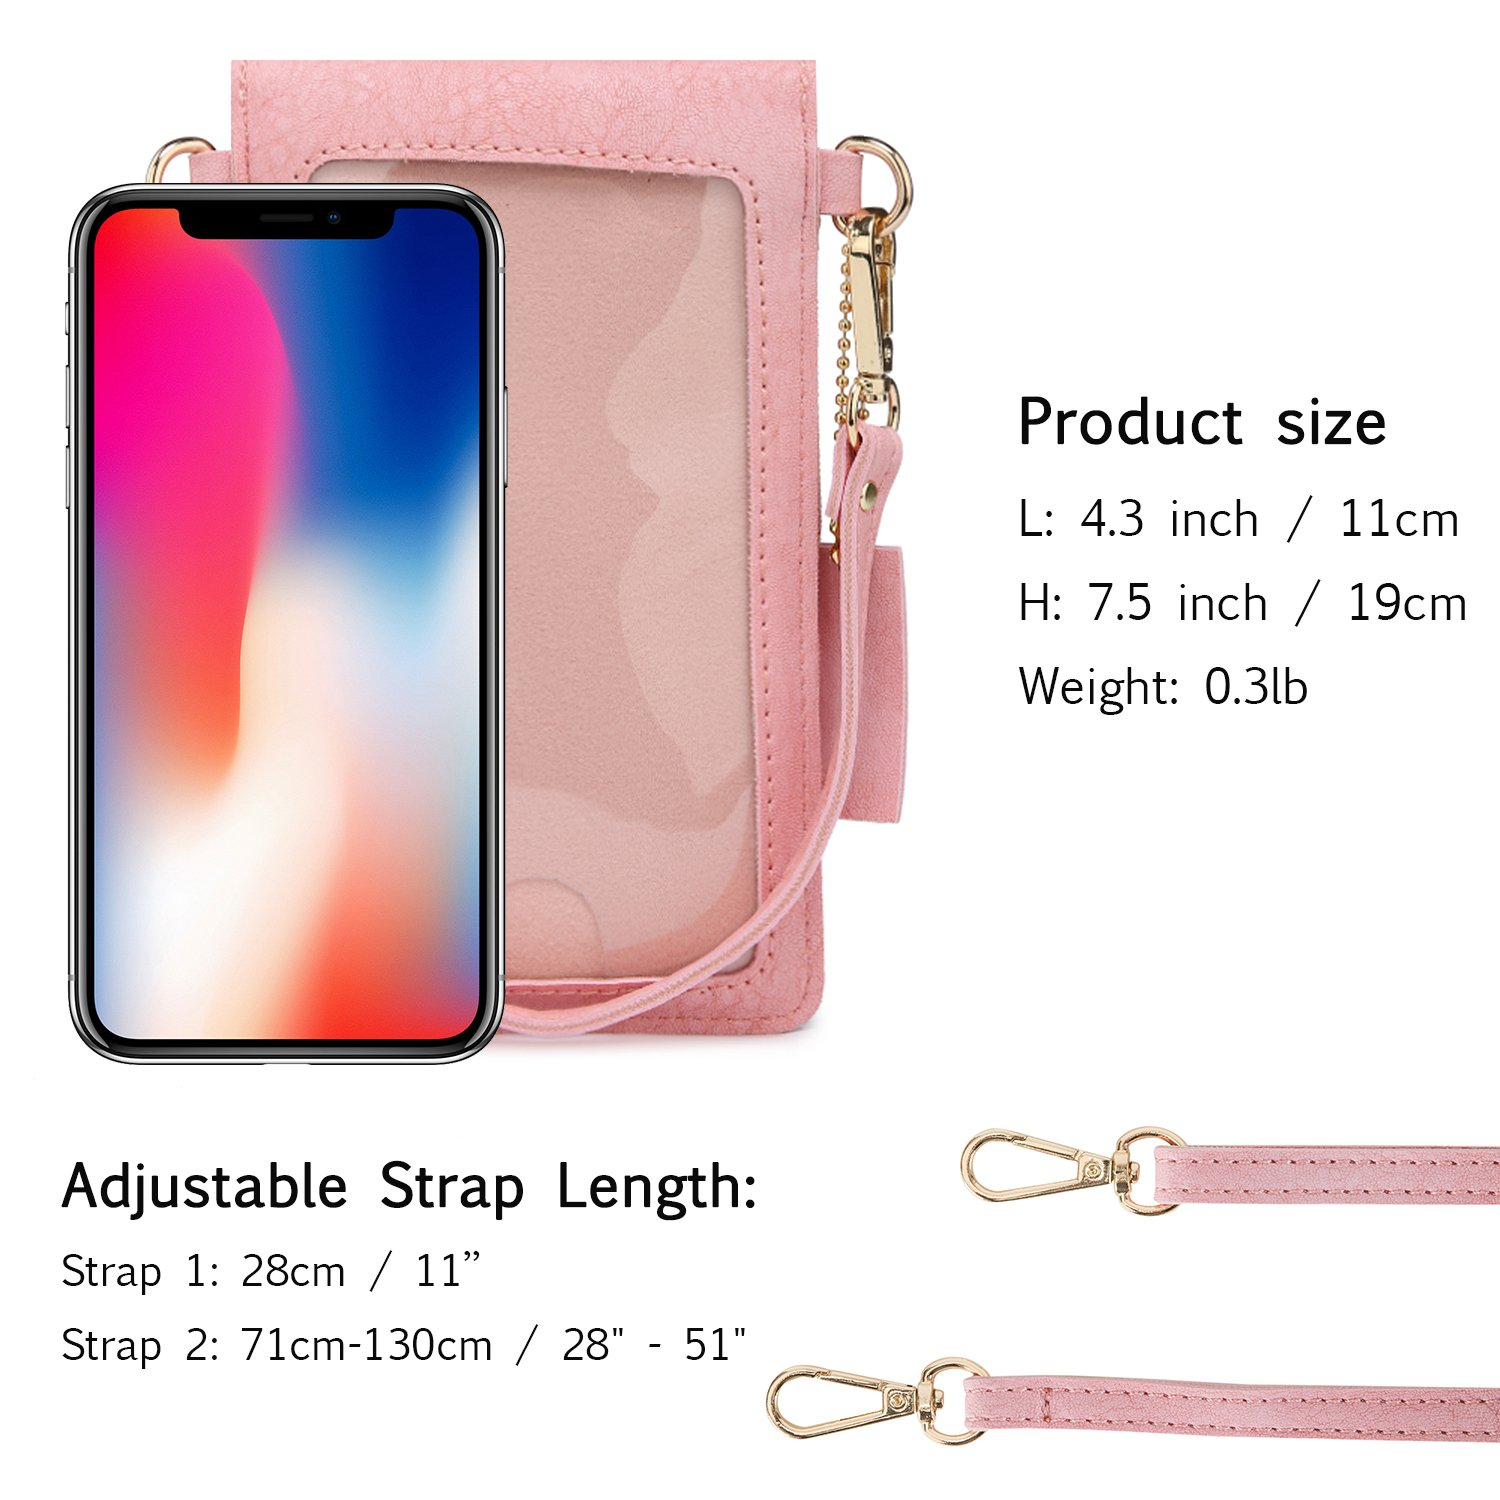 seOSTO Small Crossbody Bag, Cell Phone Purse Smartphone Wallet with 2 Shoulder Strap Handbag for Women (pink) by seOSTO (Image #5)